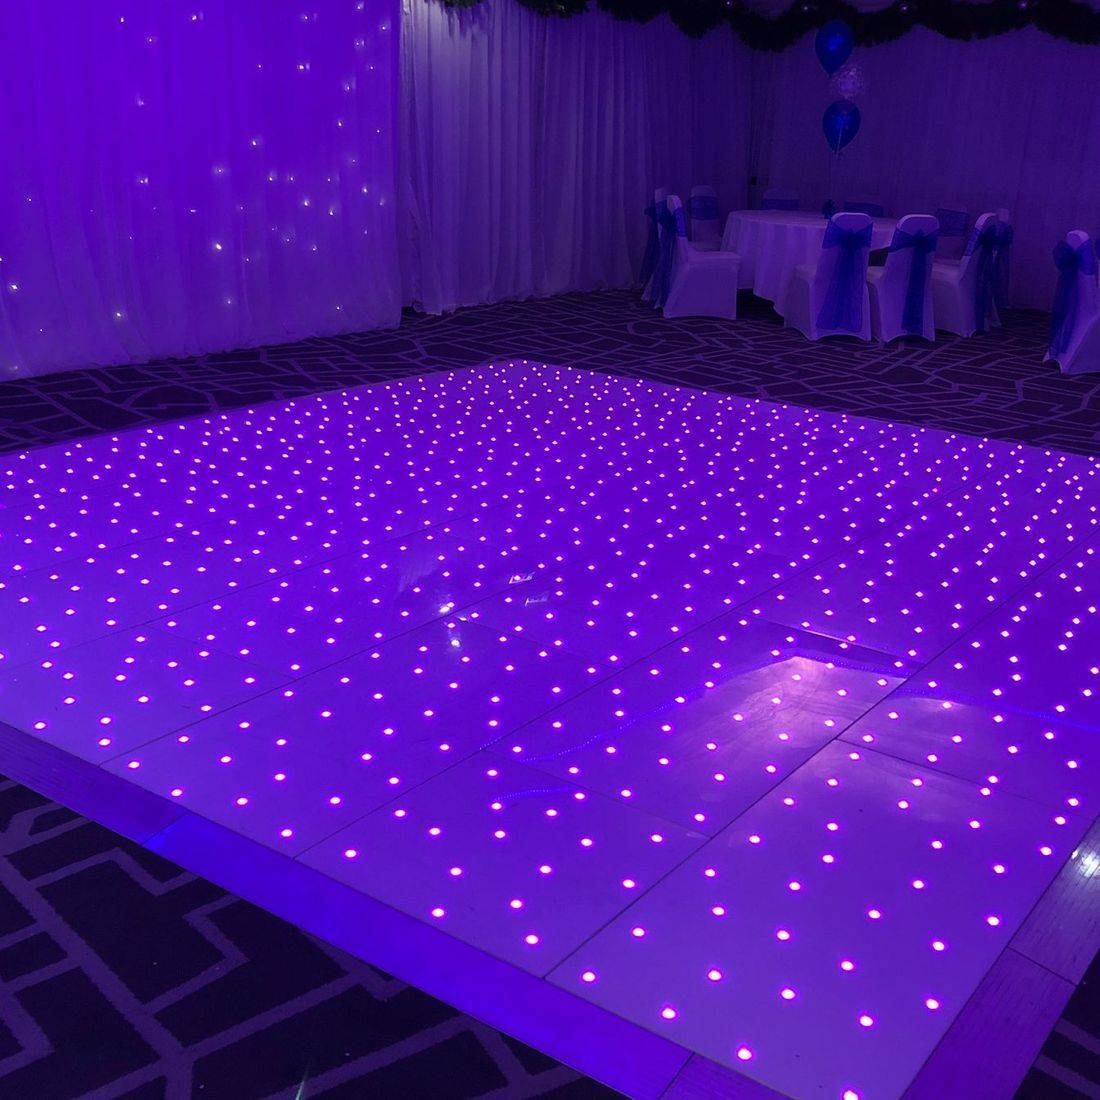 Led Love Letetrs Photobotoh Wedding DJ across Birmingham Bromsgrove Black Country Coventry Cheshire Dudley  Redditch   Solihull Stourbridge Staffordshire Statford Upon Avon  Sutton Coldfield Wolverhampton Walsall Warick London   all area's covered as well as other locations throughout the West Midlands